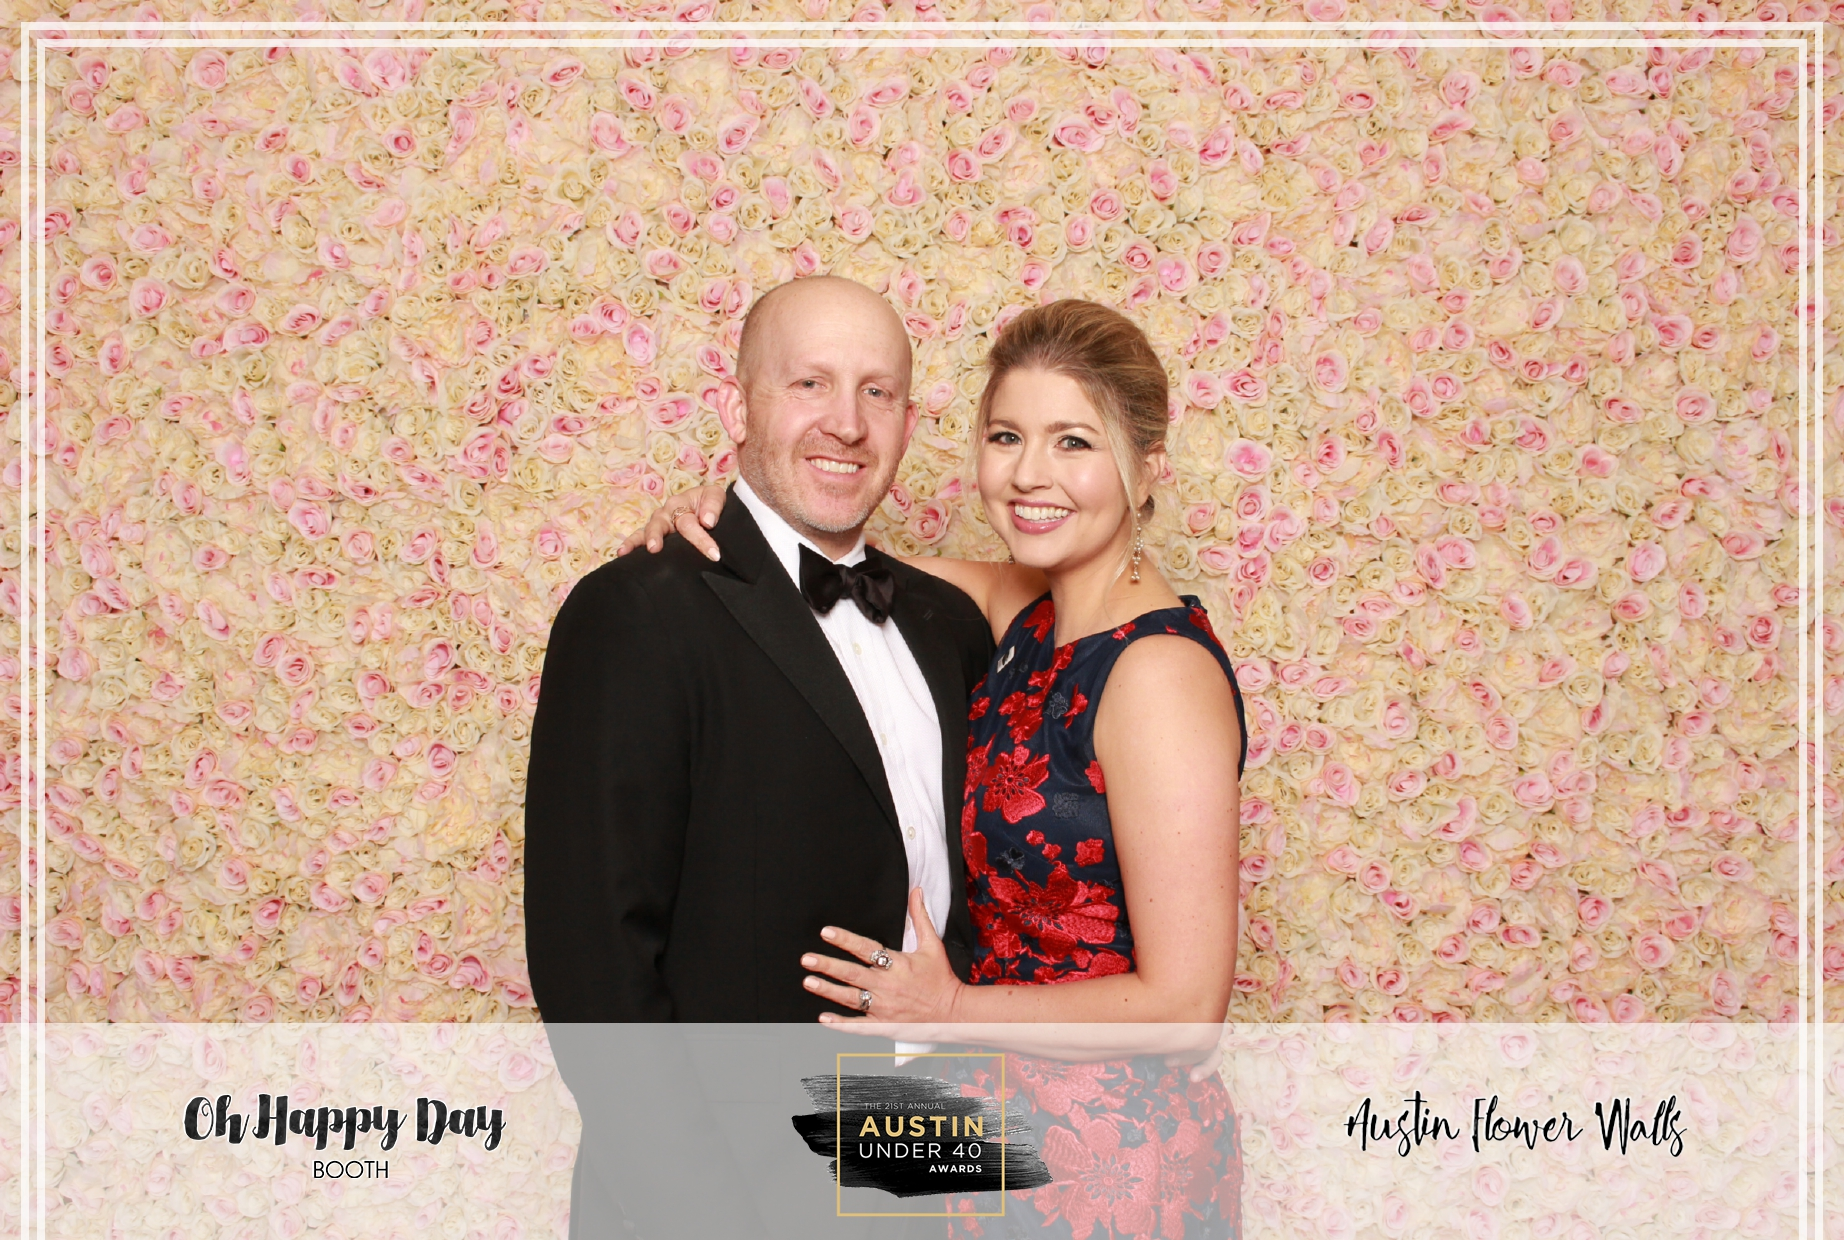 Oh Happy Day Booth - Austin Under 40-46.jpg